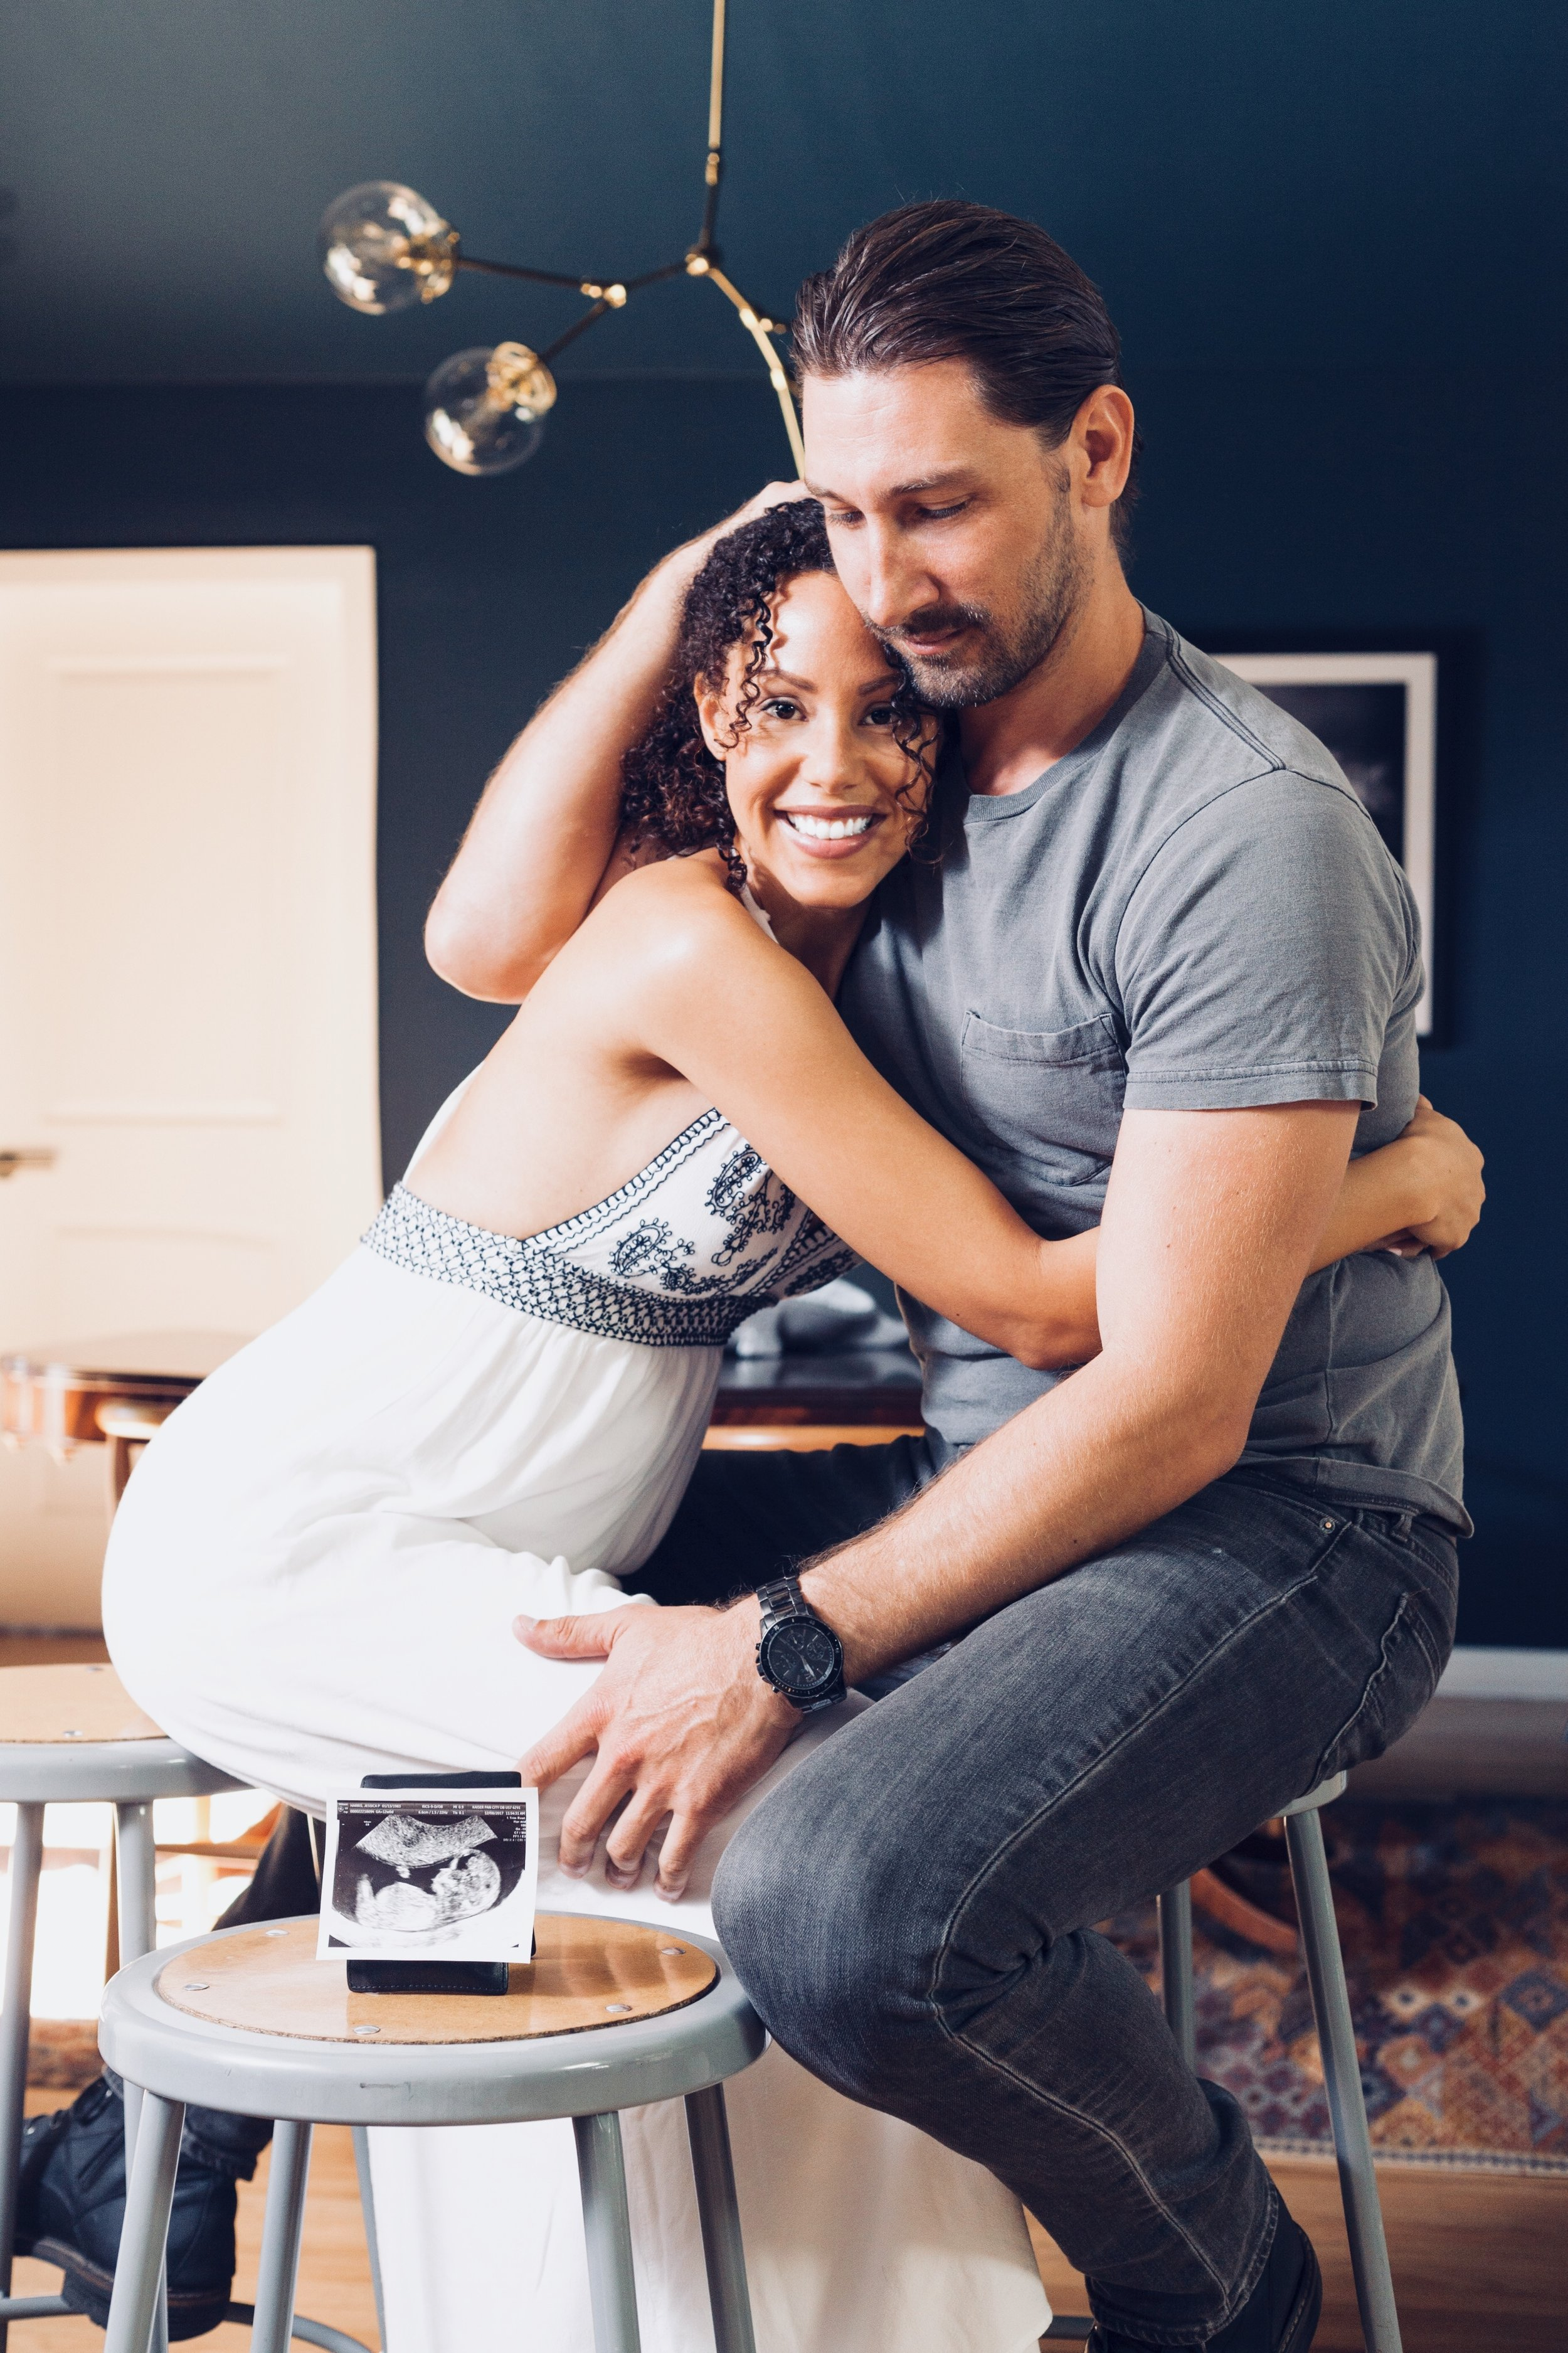 WOman and man embracing in front of an ultrasound sitting on benches.